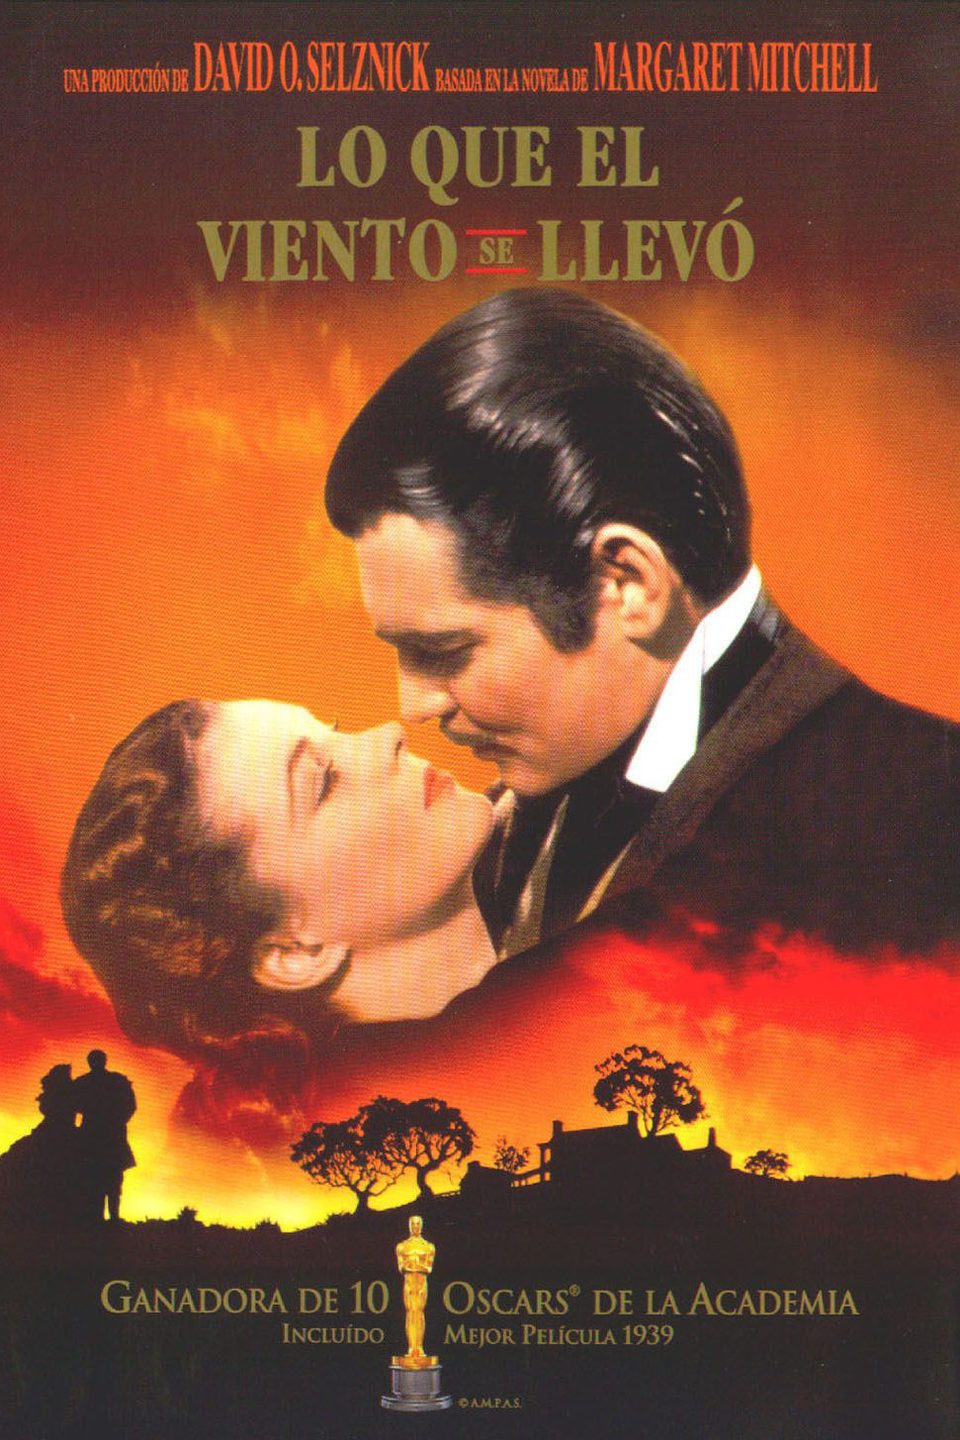 España poster for Gone With the Wind